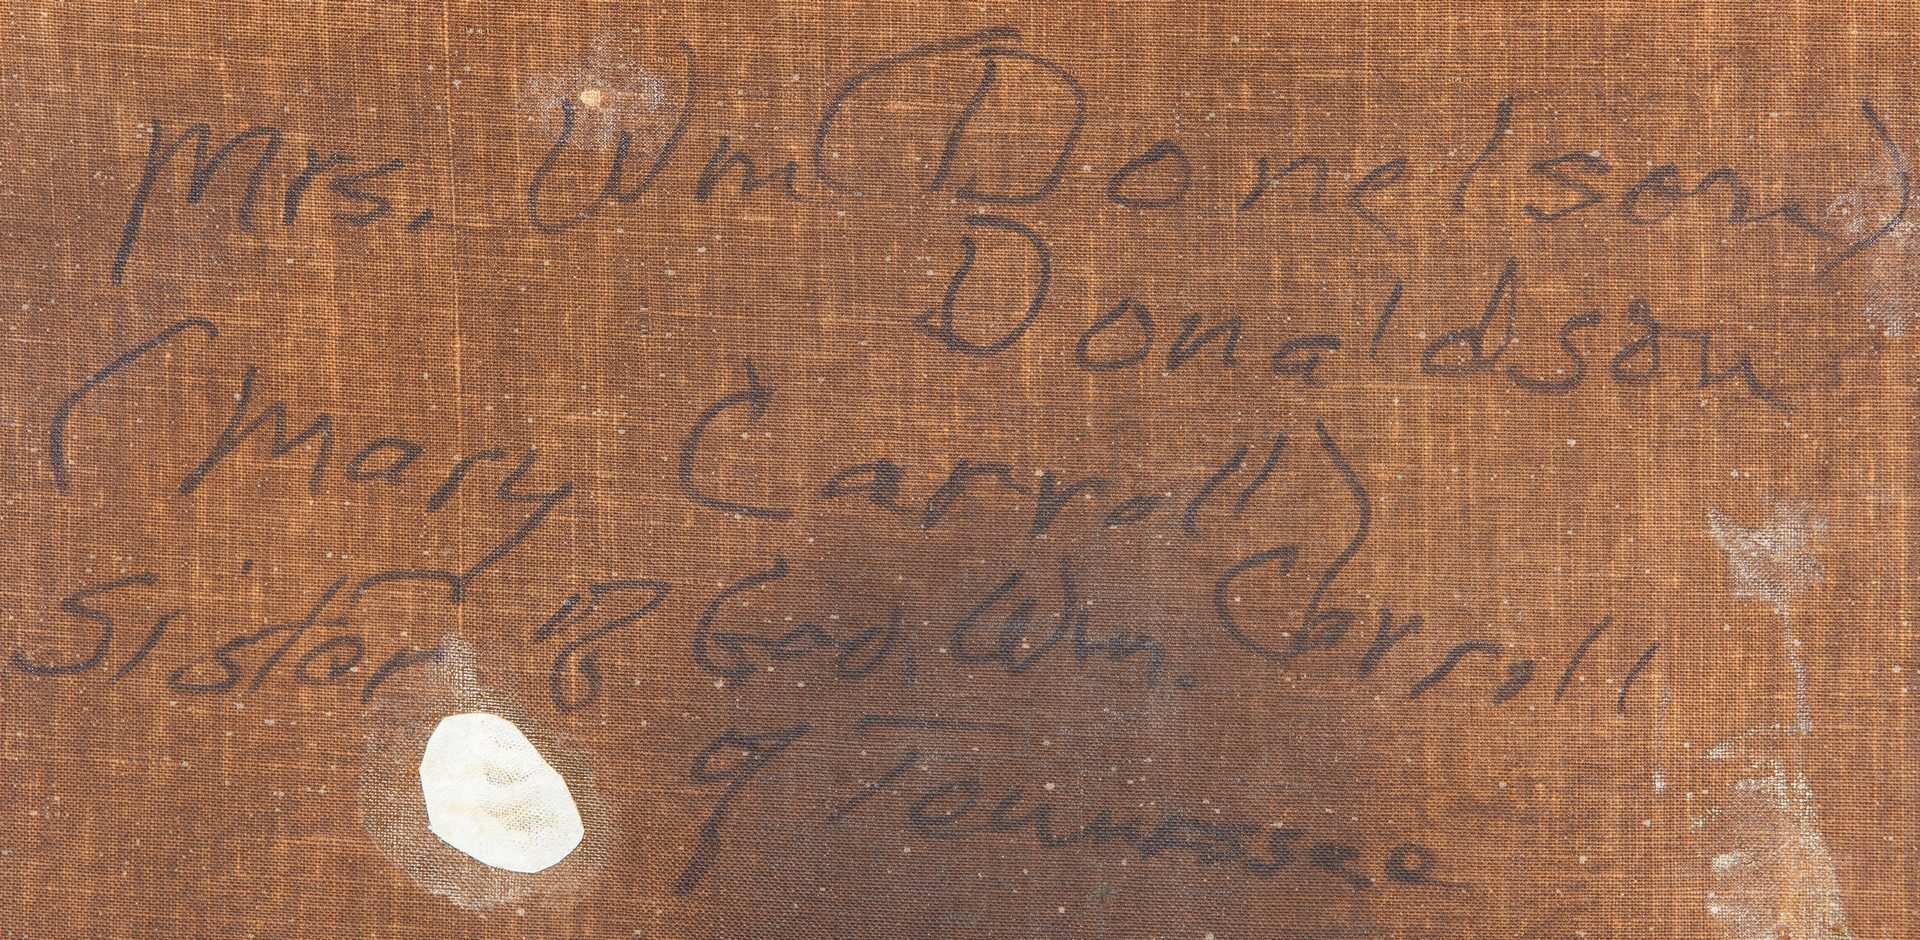 Lot 462: George Dury O/C, Mary Carroll Donelson, plus Wm. Carroll Signed